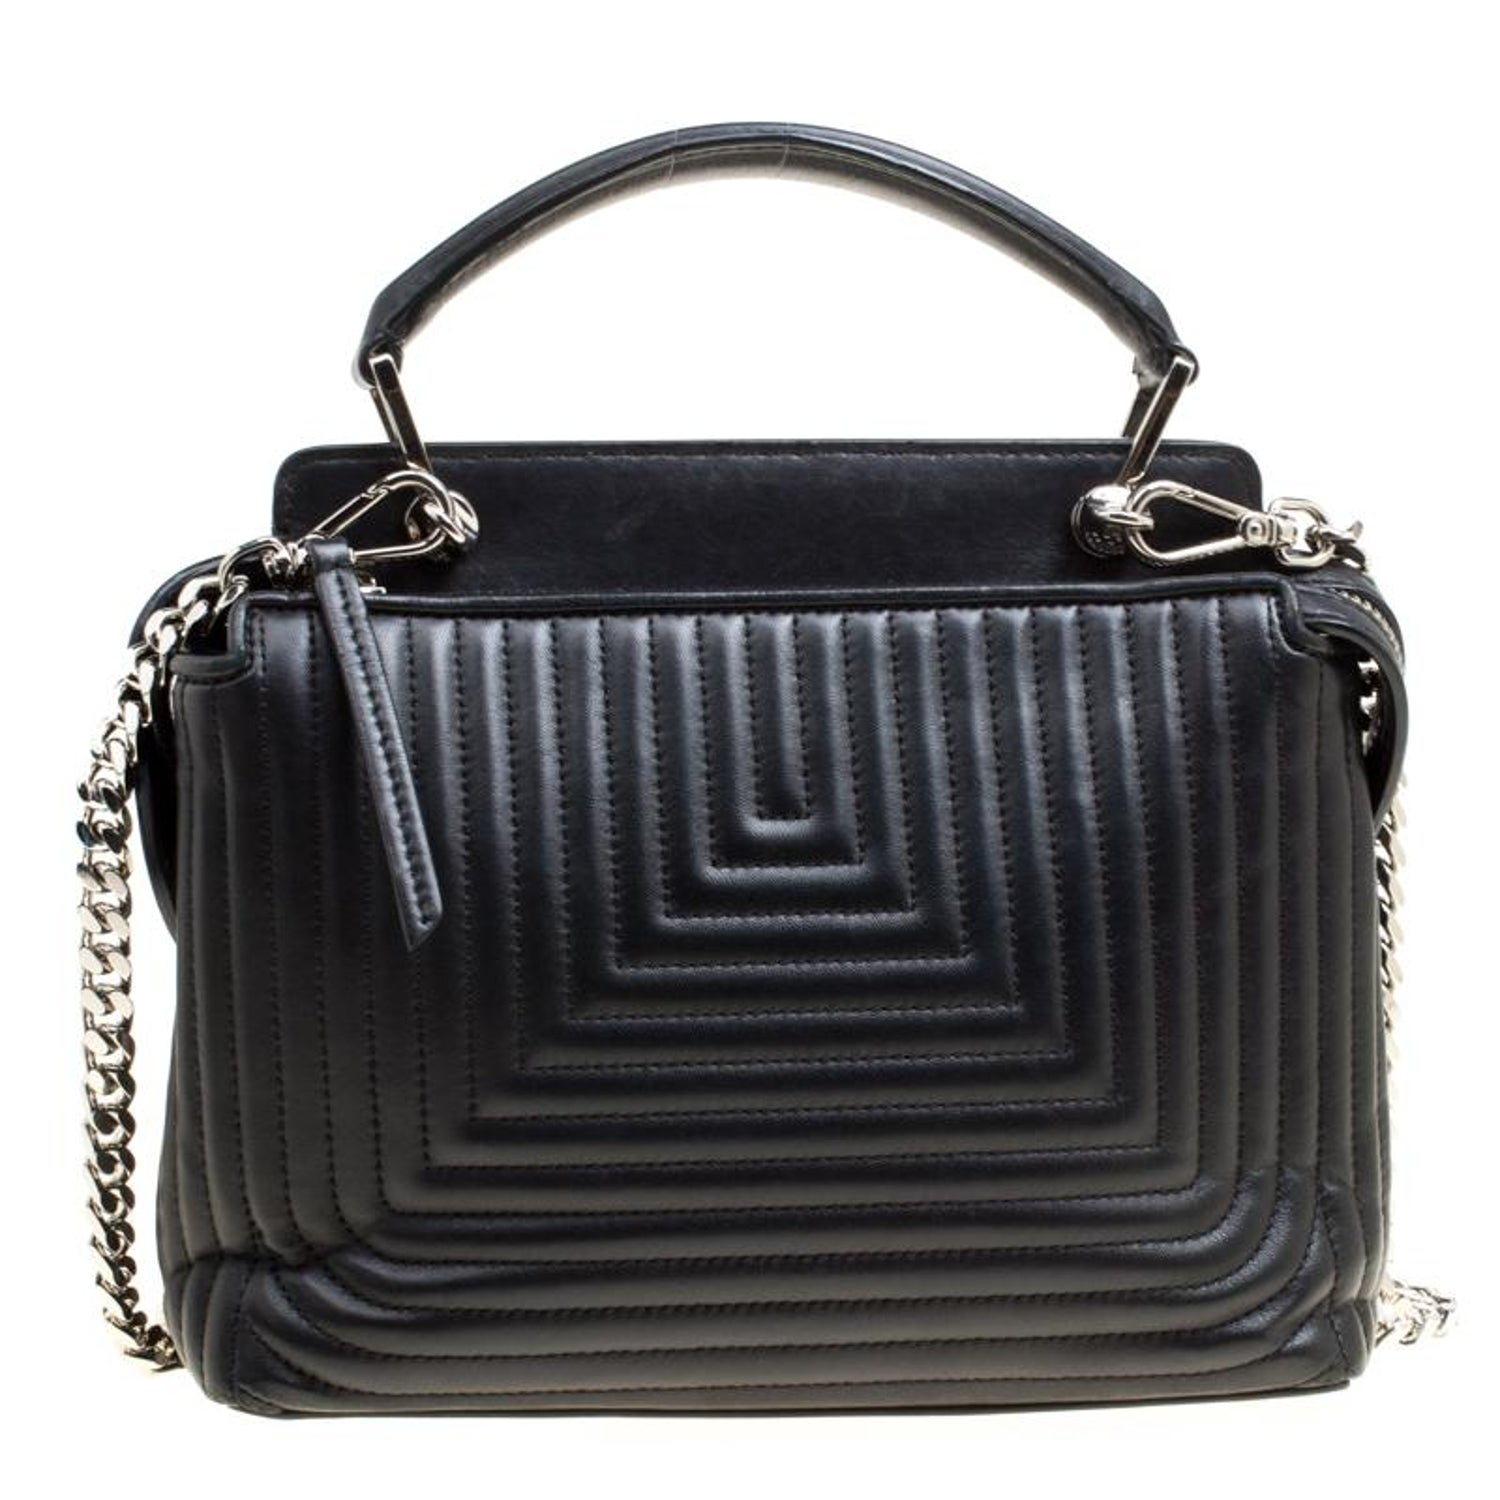 6df1ca0bb6d Fendi Black Quilted Leather Dotcom Click Shoulder Bag For Sale at 1stdibs